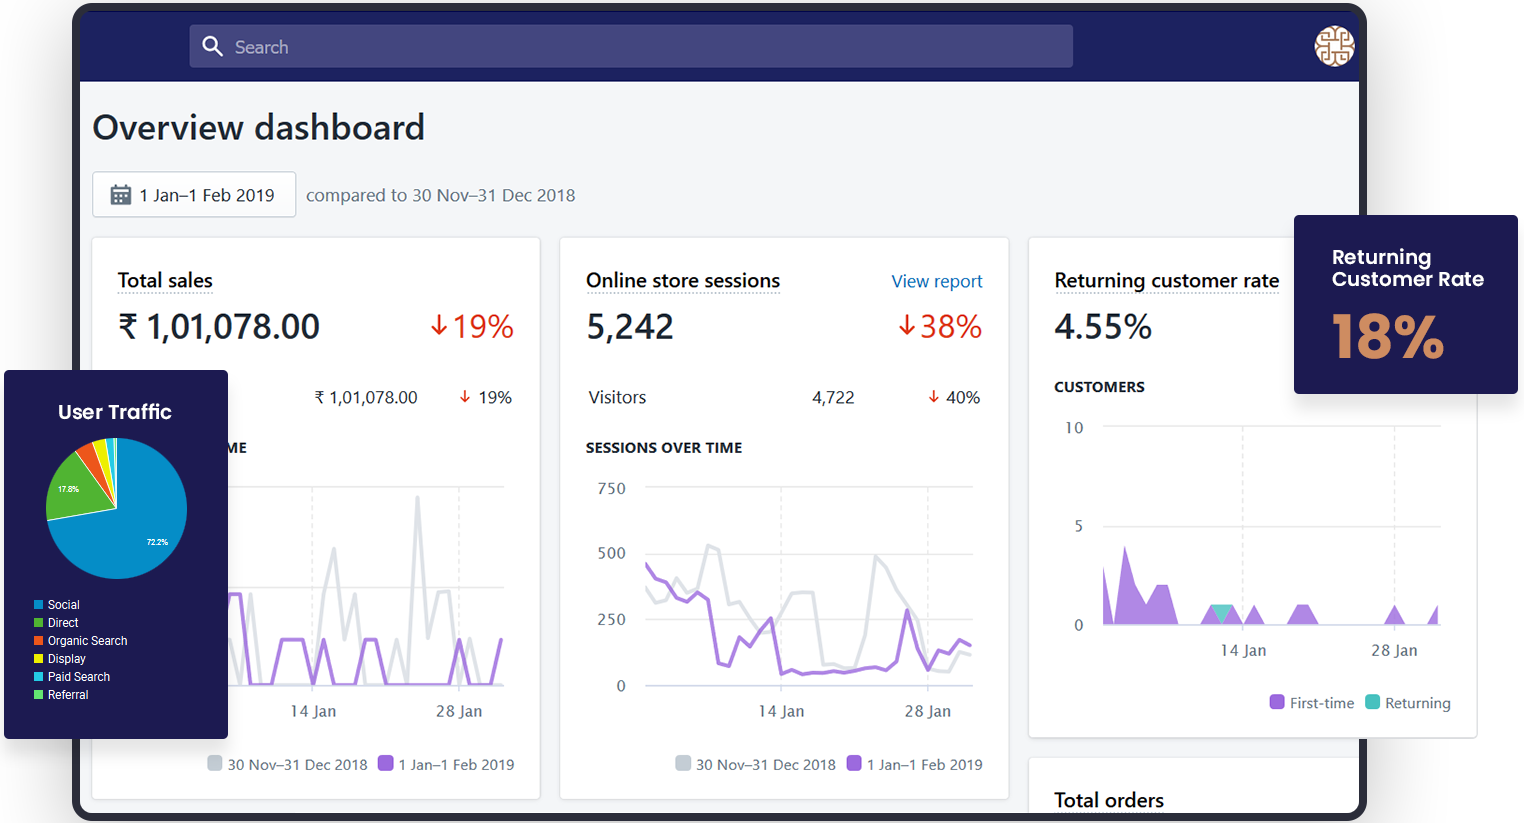 Overview Dashboard & User Traffic